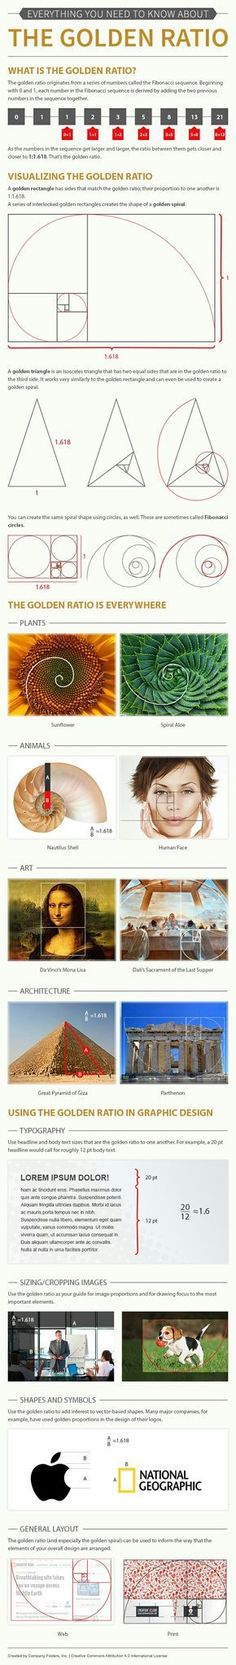 Psychology infographic and charts The golden ratio for design…. Infographic Description The golden ratio for design. - #Psychologyinfographics